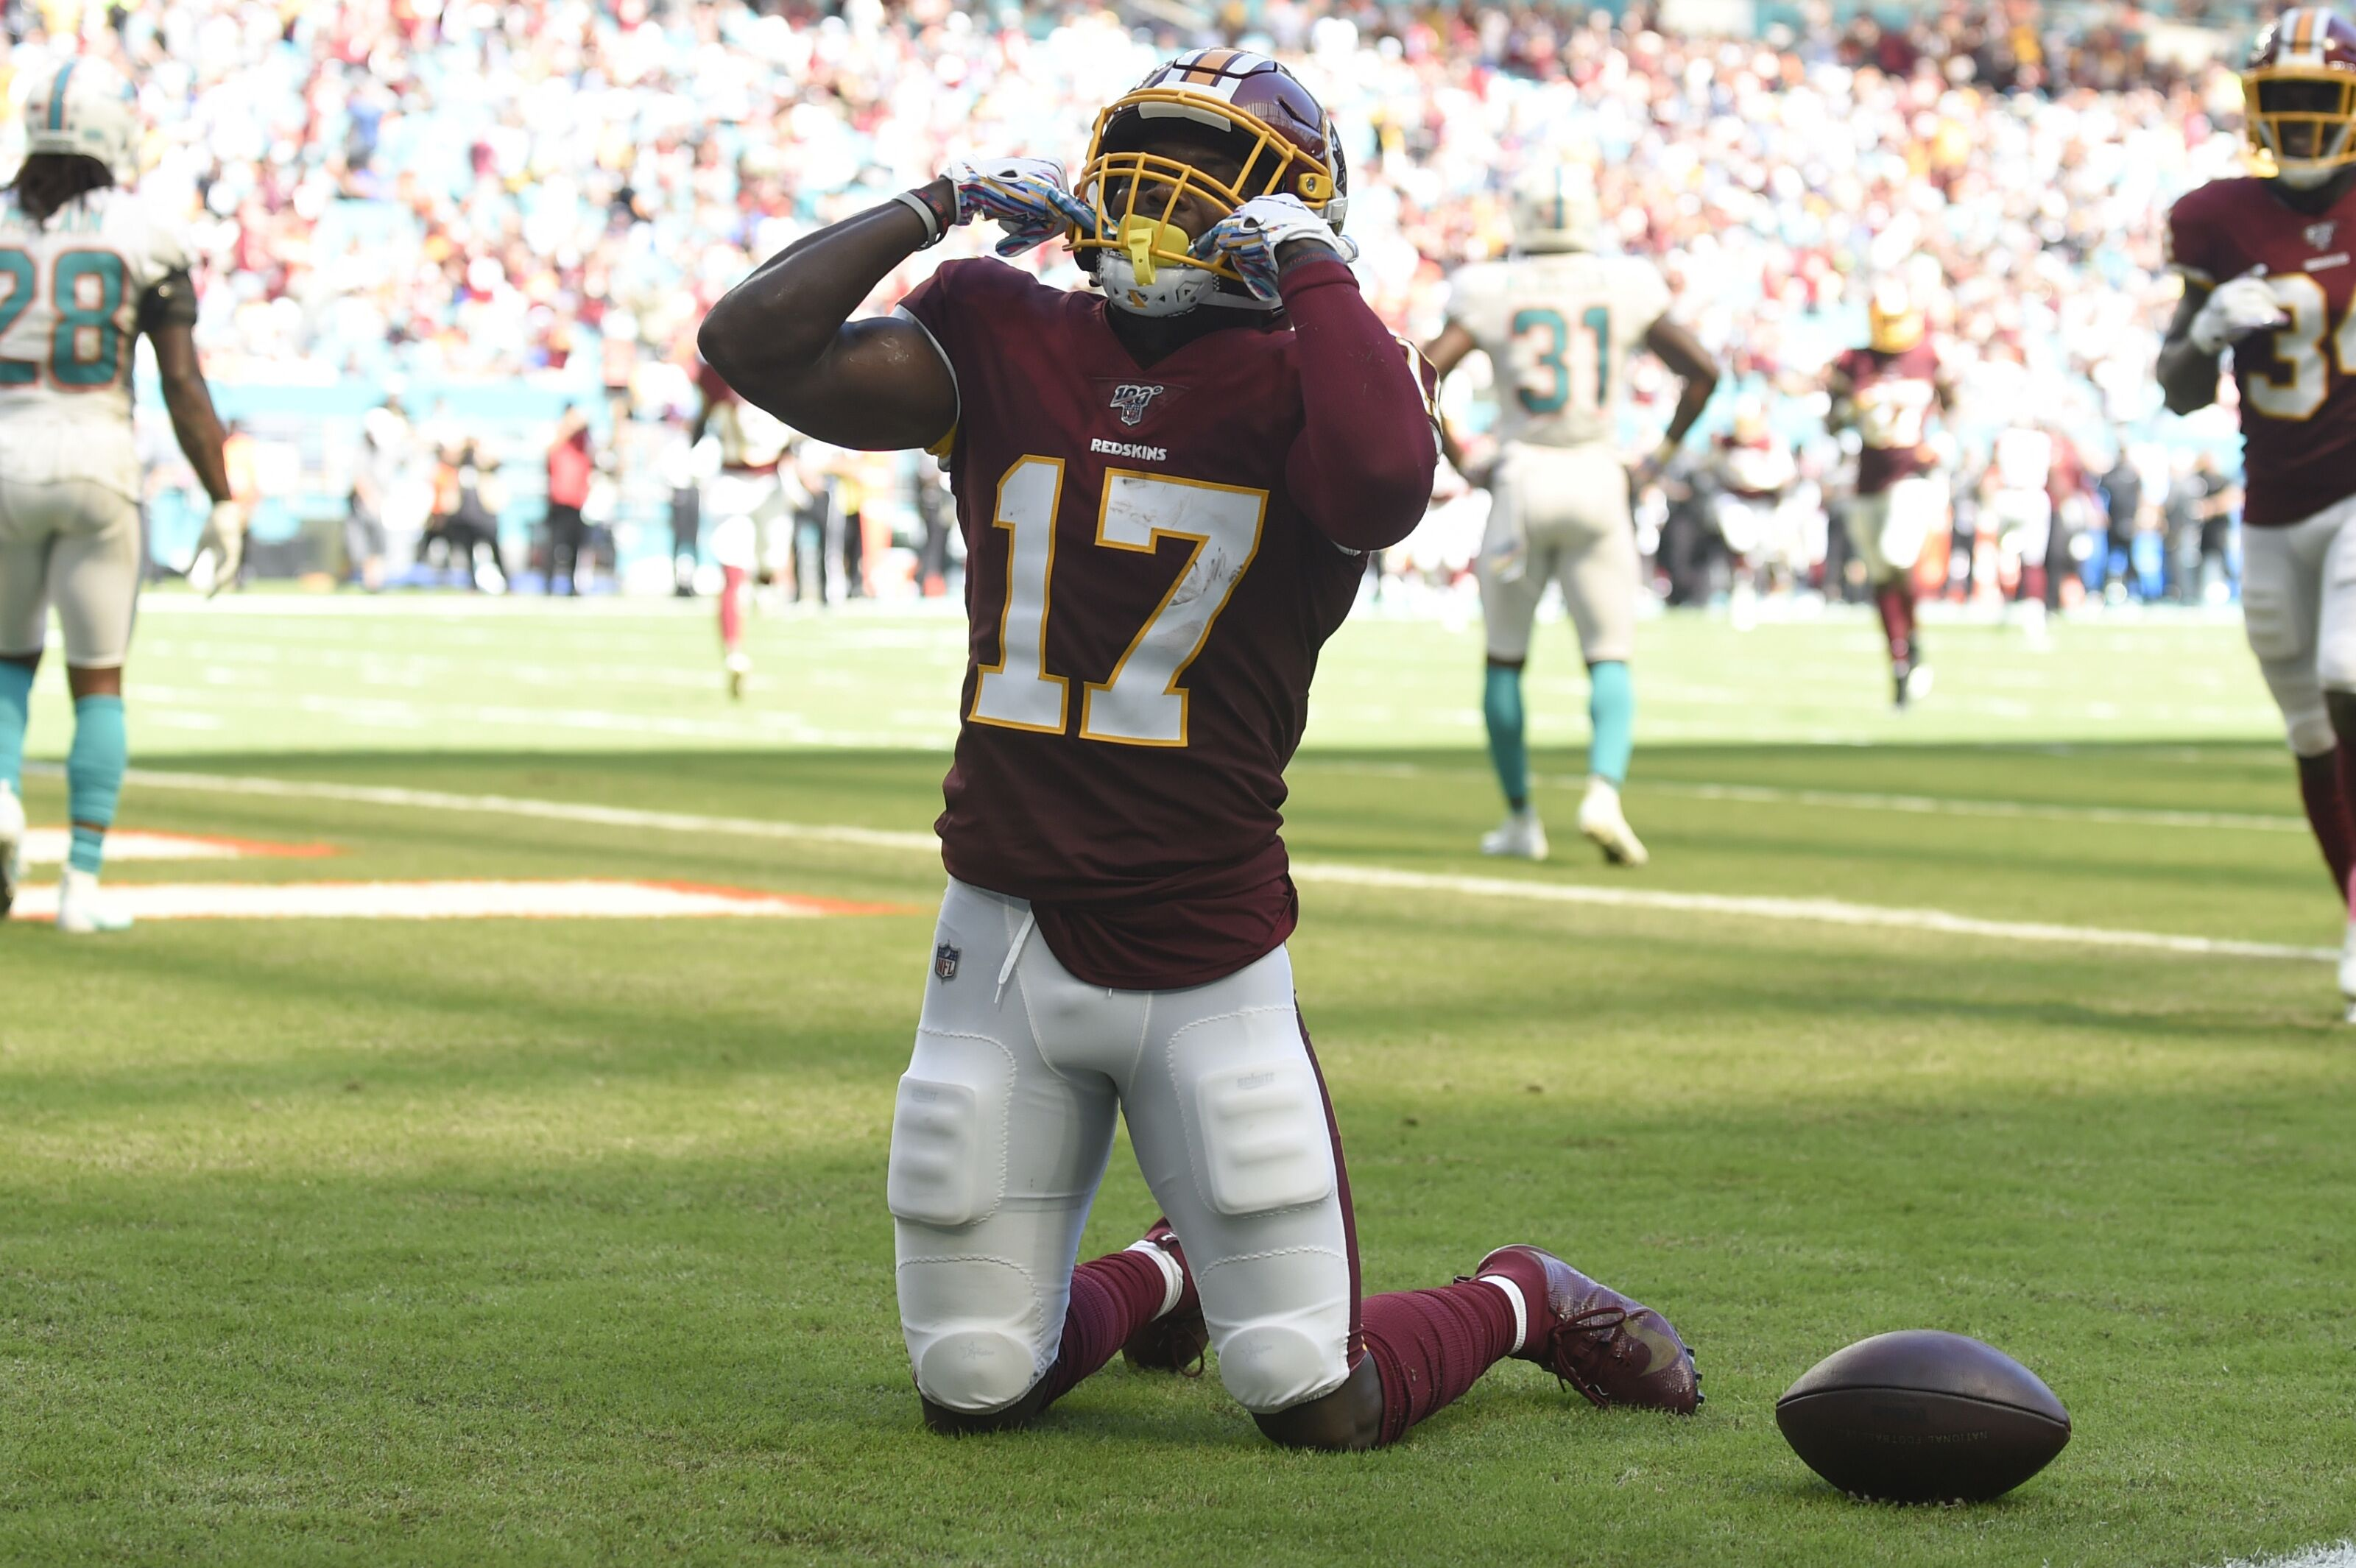 Redskins narrowly avoid defeat at the hands of the Dolphins, win 17-16